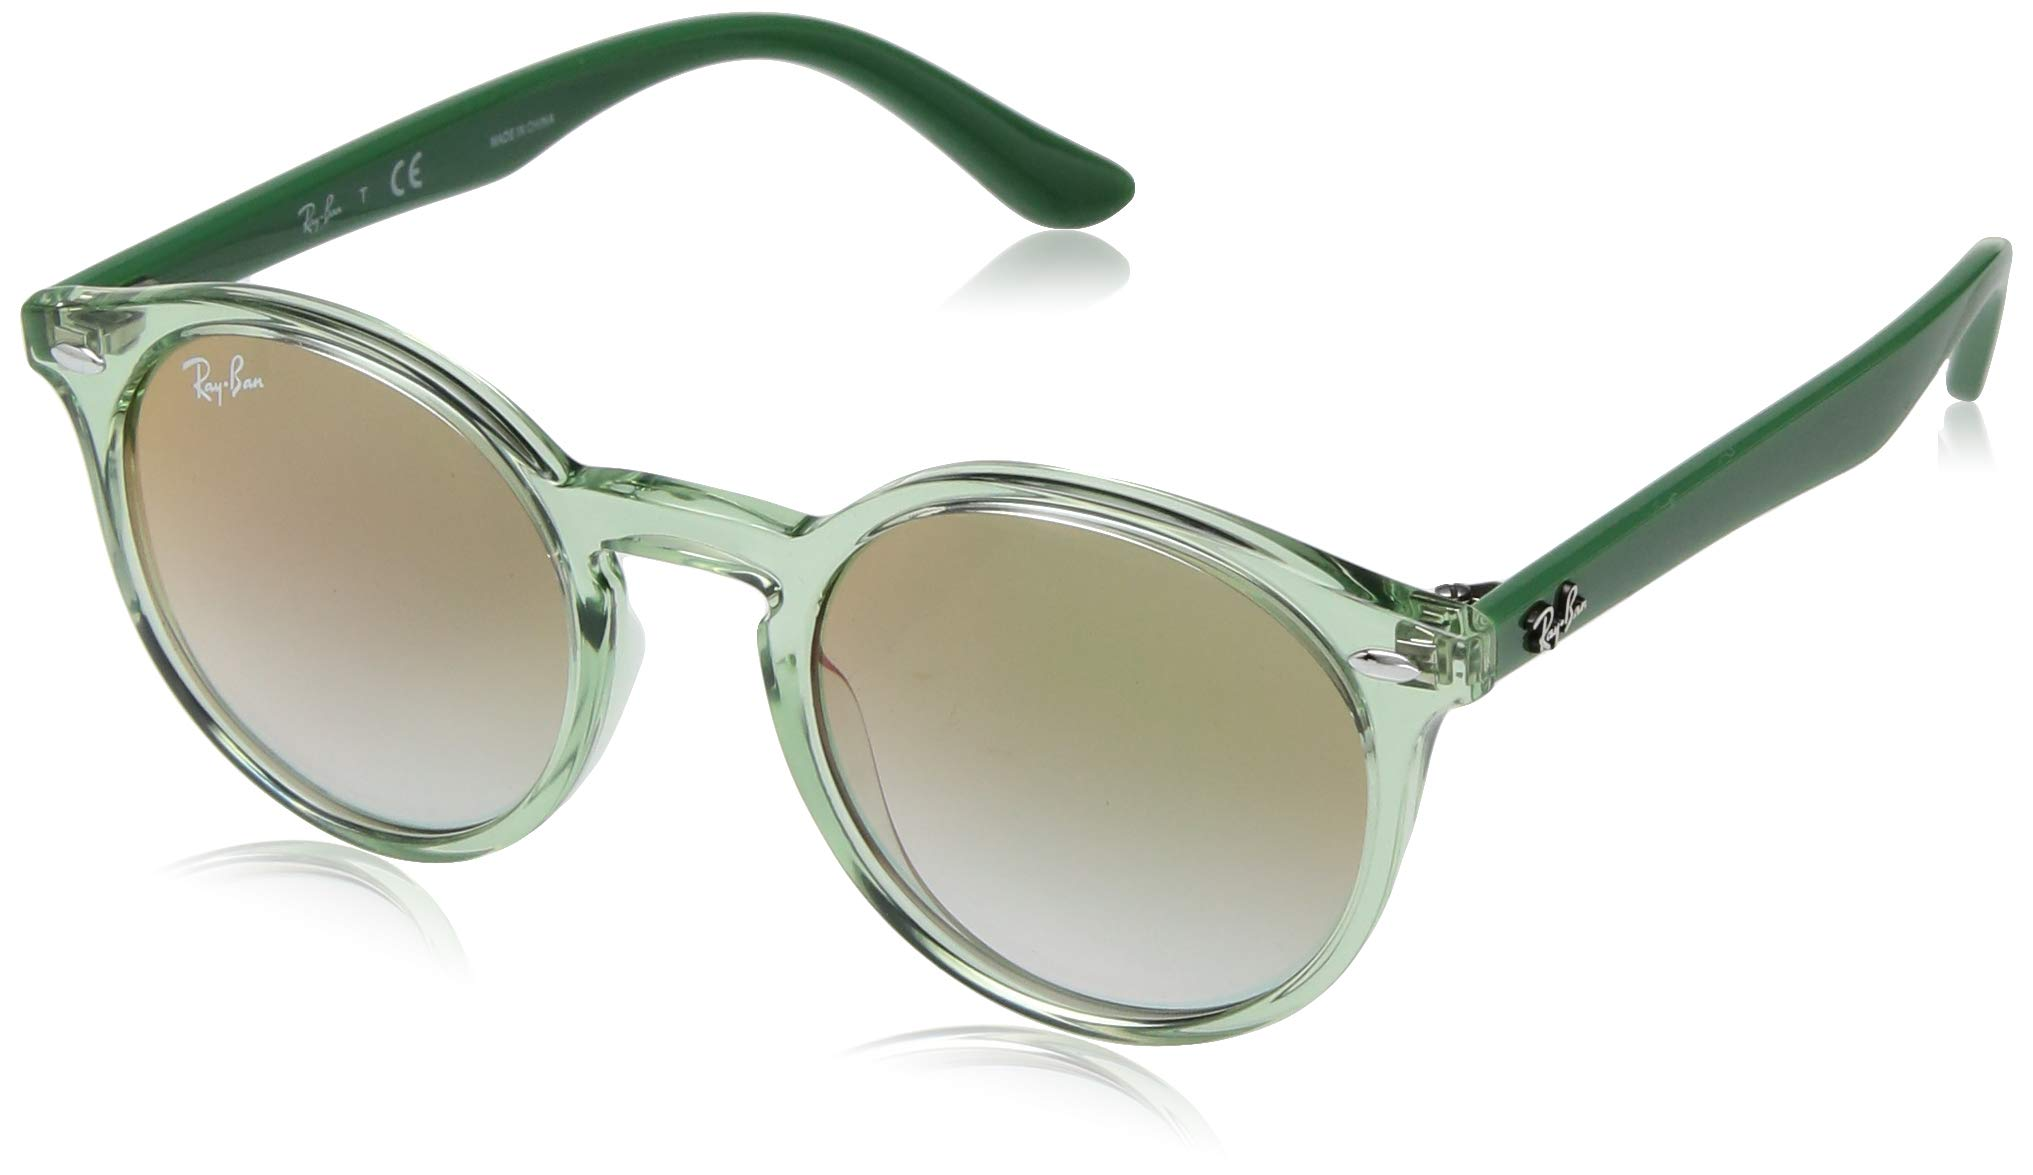 RAY-BAN JUNIOR Kids' RJ9064S Round Kids Sunglasses, Transparent Green/Green Red Gradient Mirror, 44 mm by RAY-BAN JUNIOR